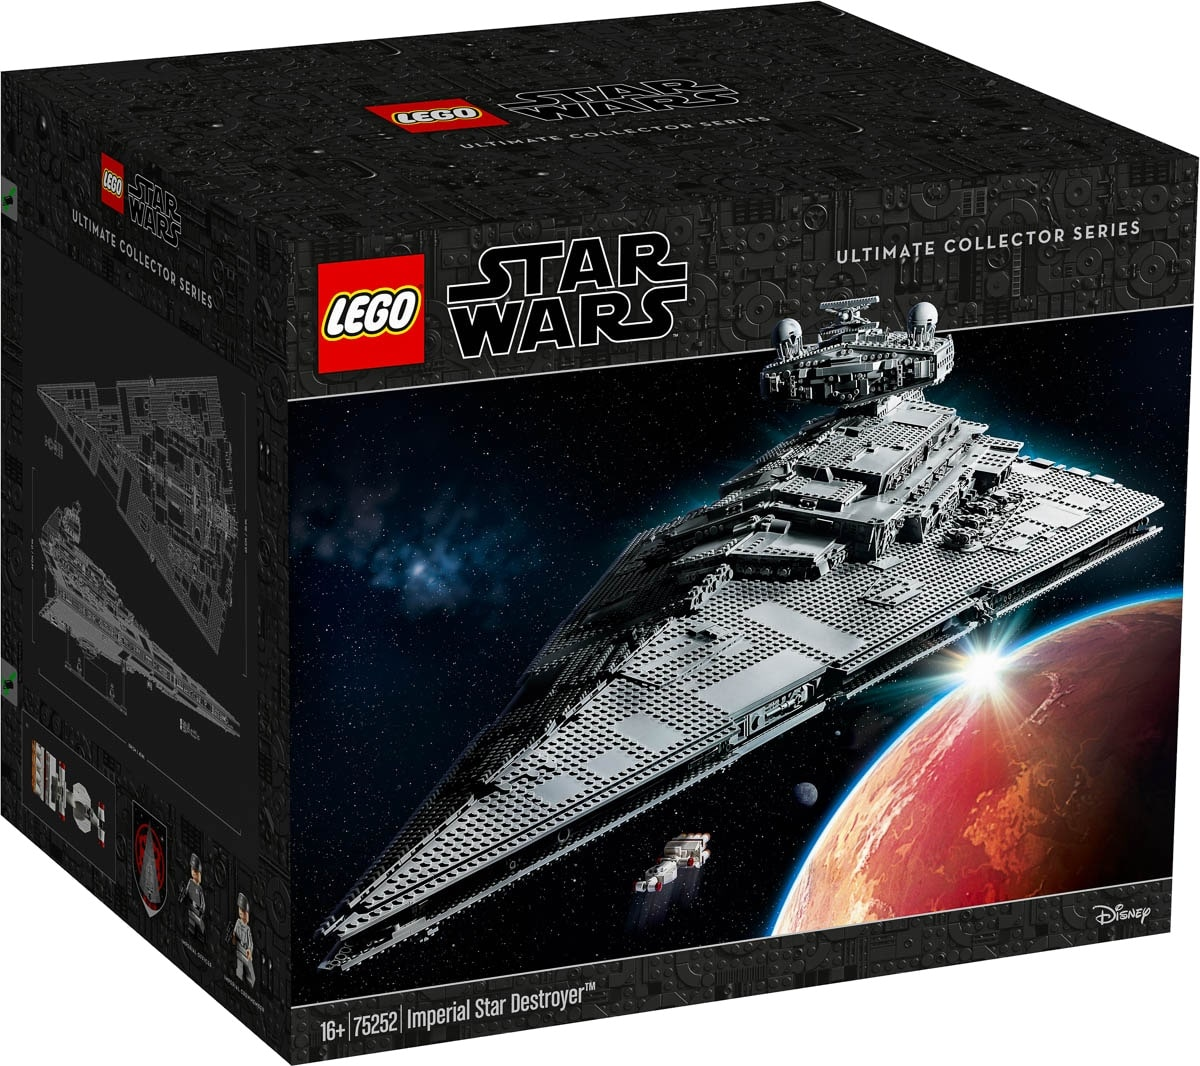 LEGO Star Wars 75252 UCS Imperial Star Destroyer